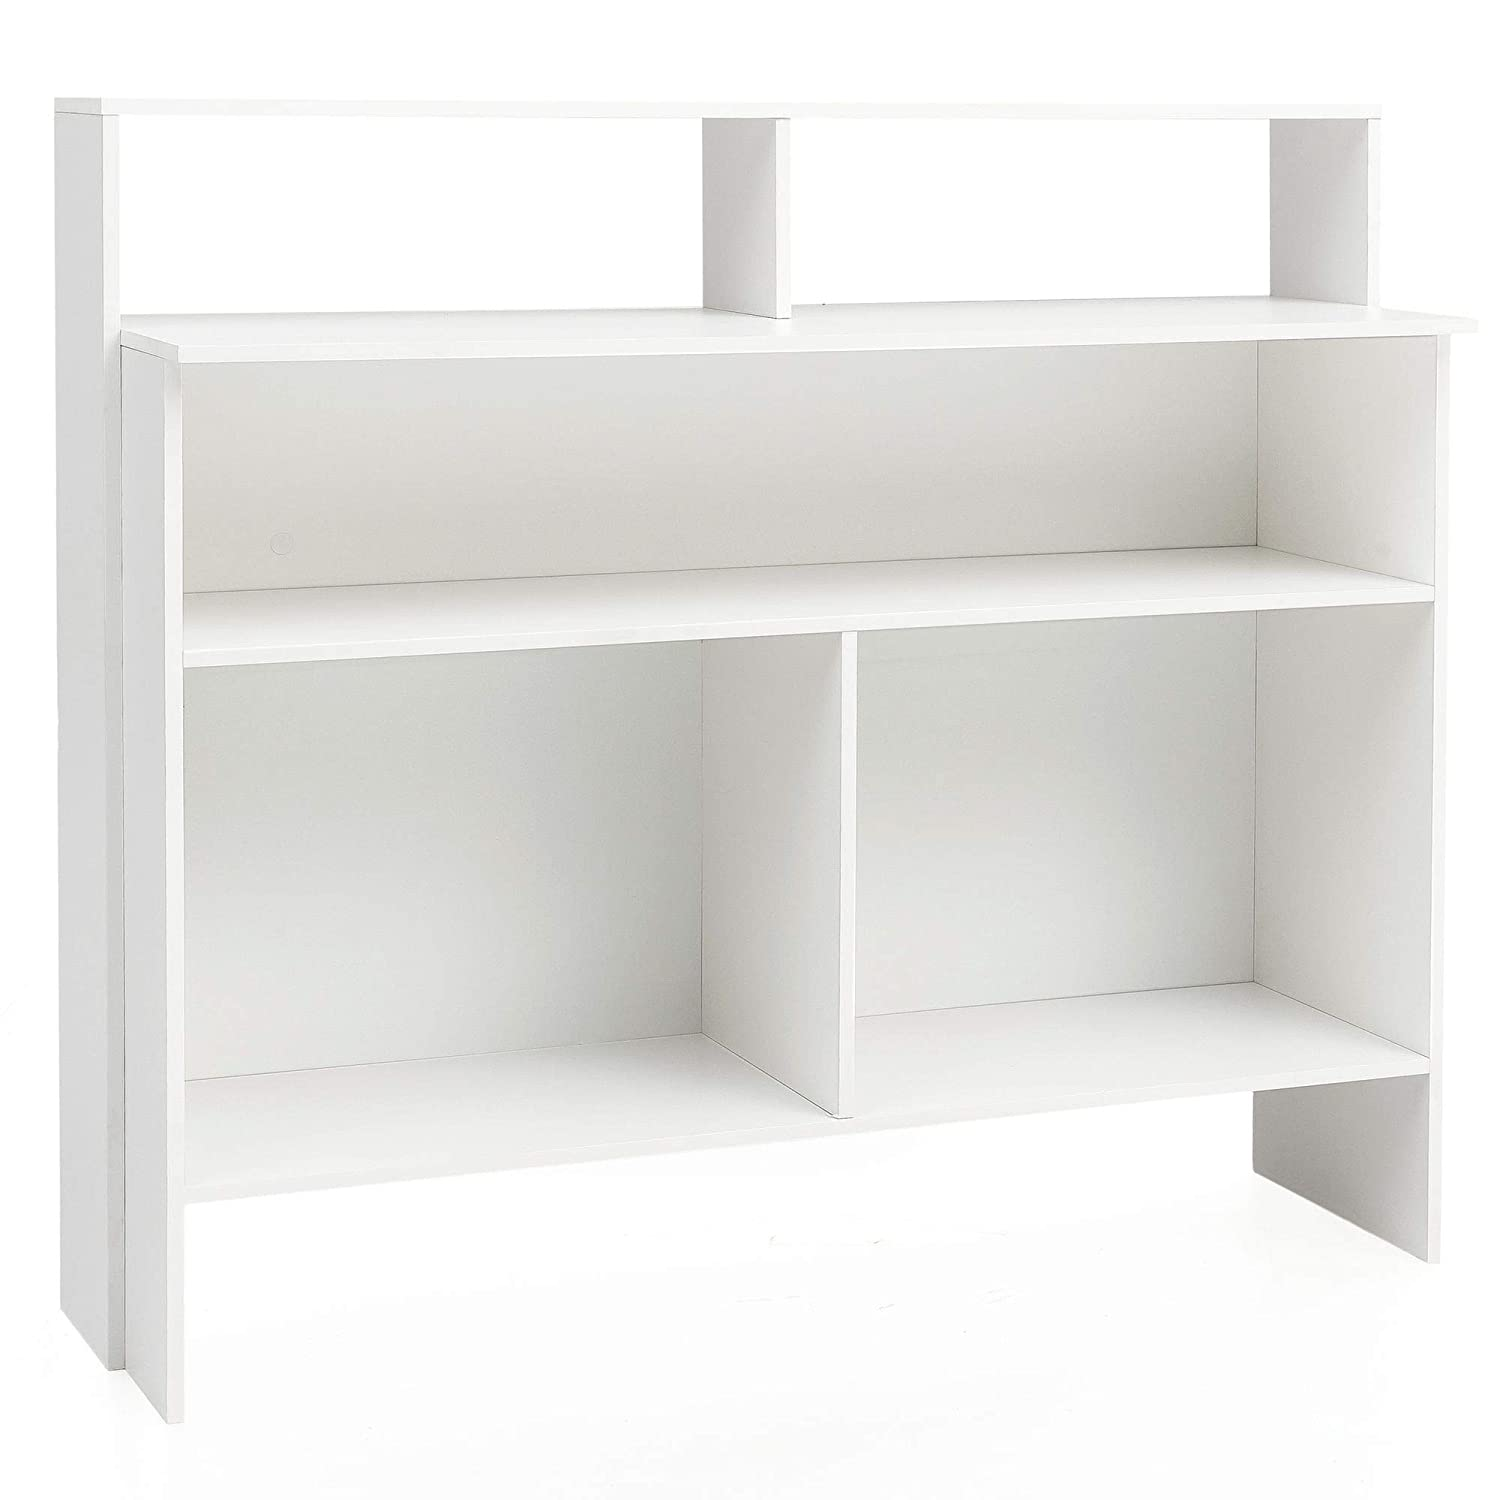 KADIMA DESIGN Standregal Stehregal Bücherregal Modern Weiß ...